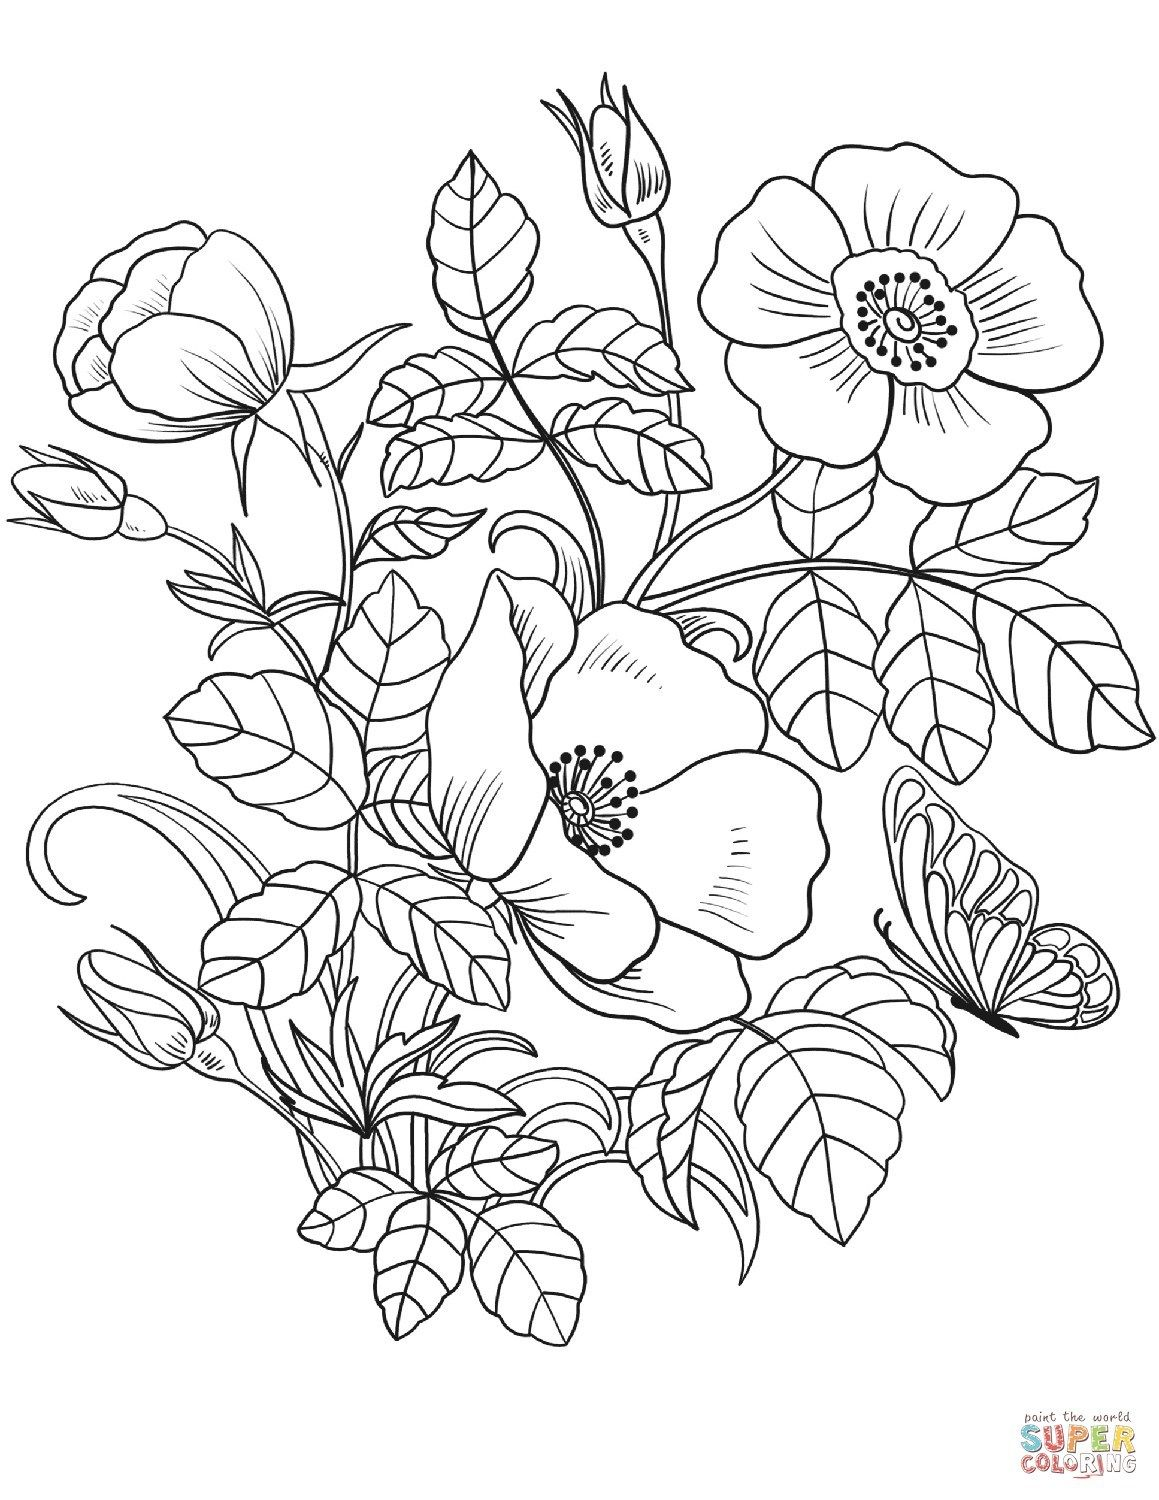 Spring Coloring Page Spring Flowers Coloring Page Free Printable Coloring Pages Davemelillo Com Spring Coloring Sheets Flower Coloring Sheets Printable Flower Coloring Pages